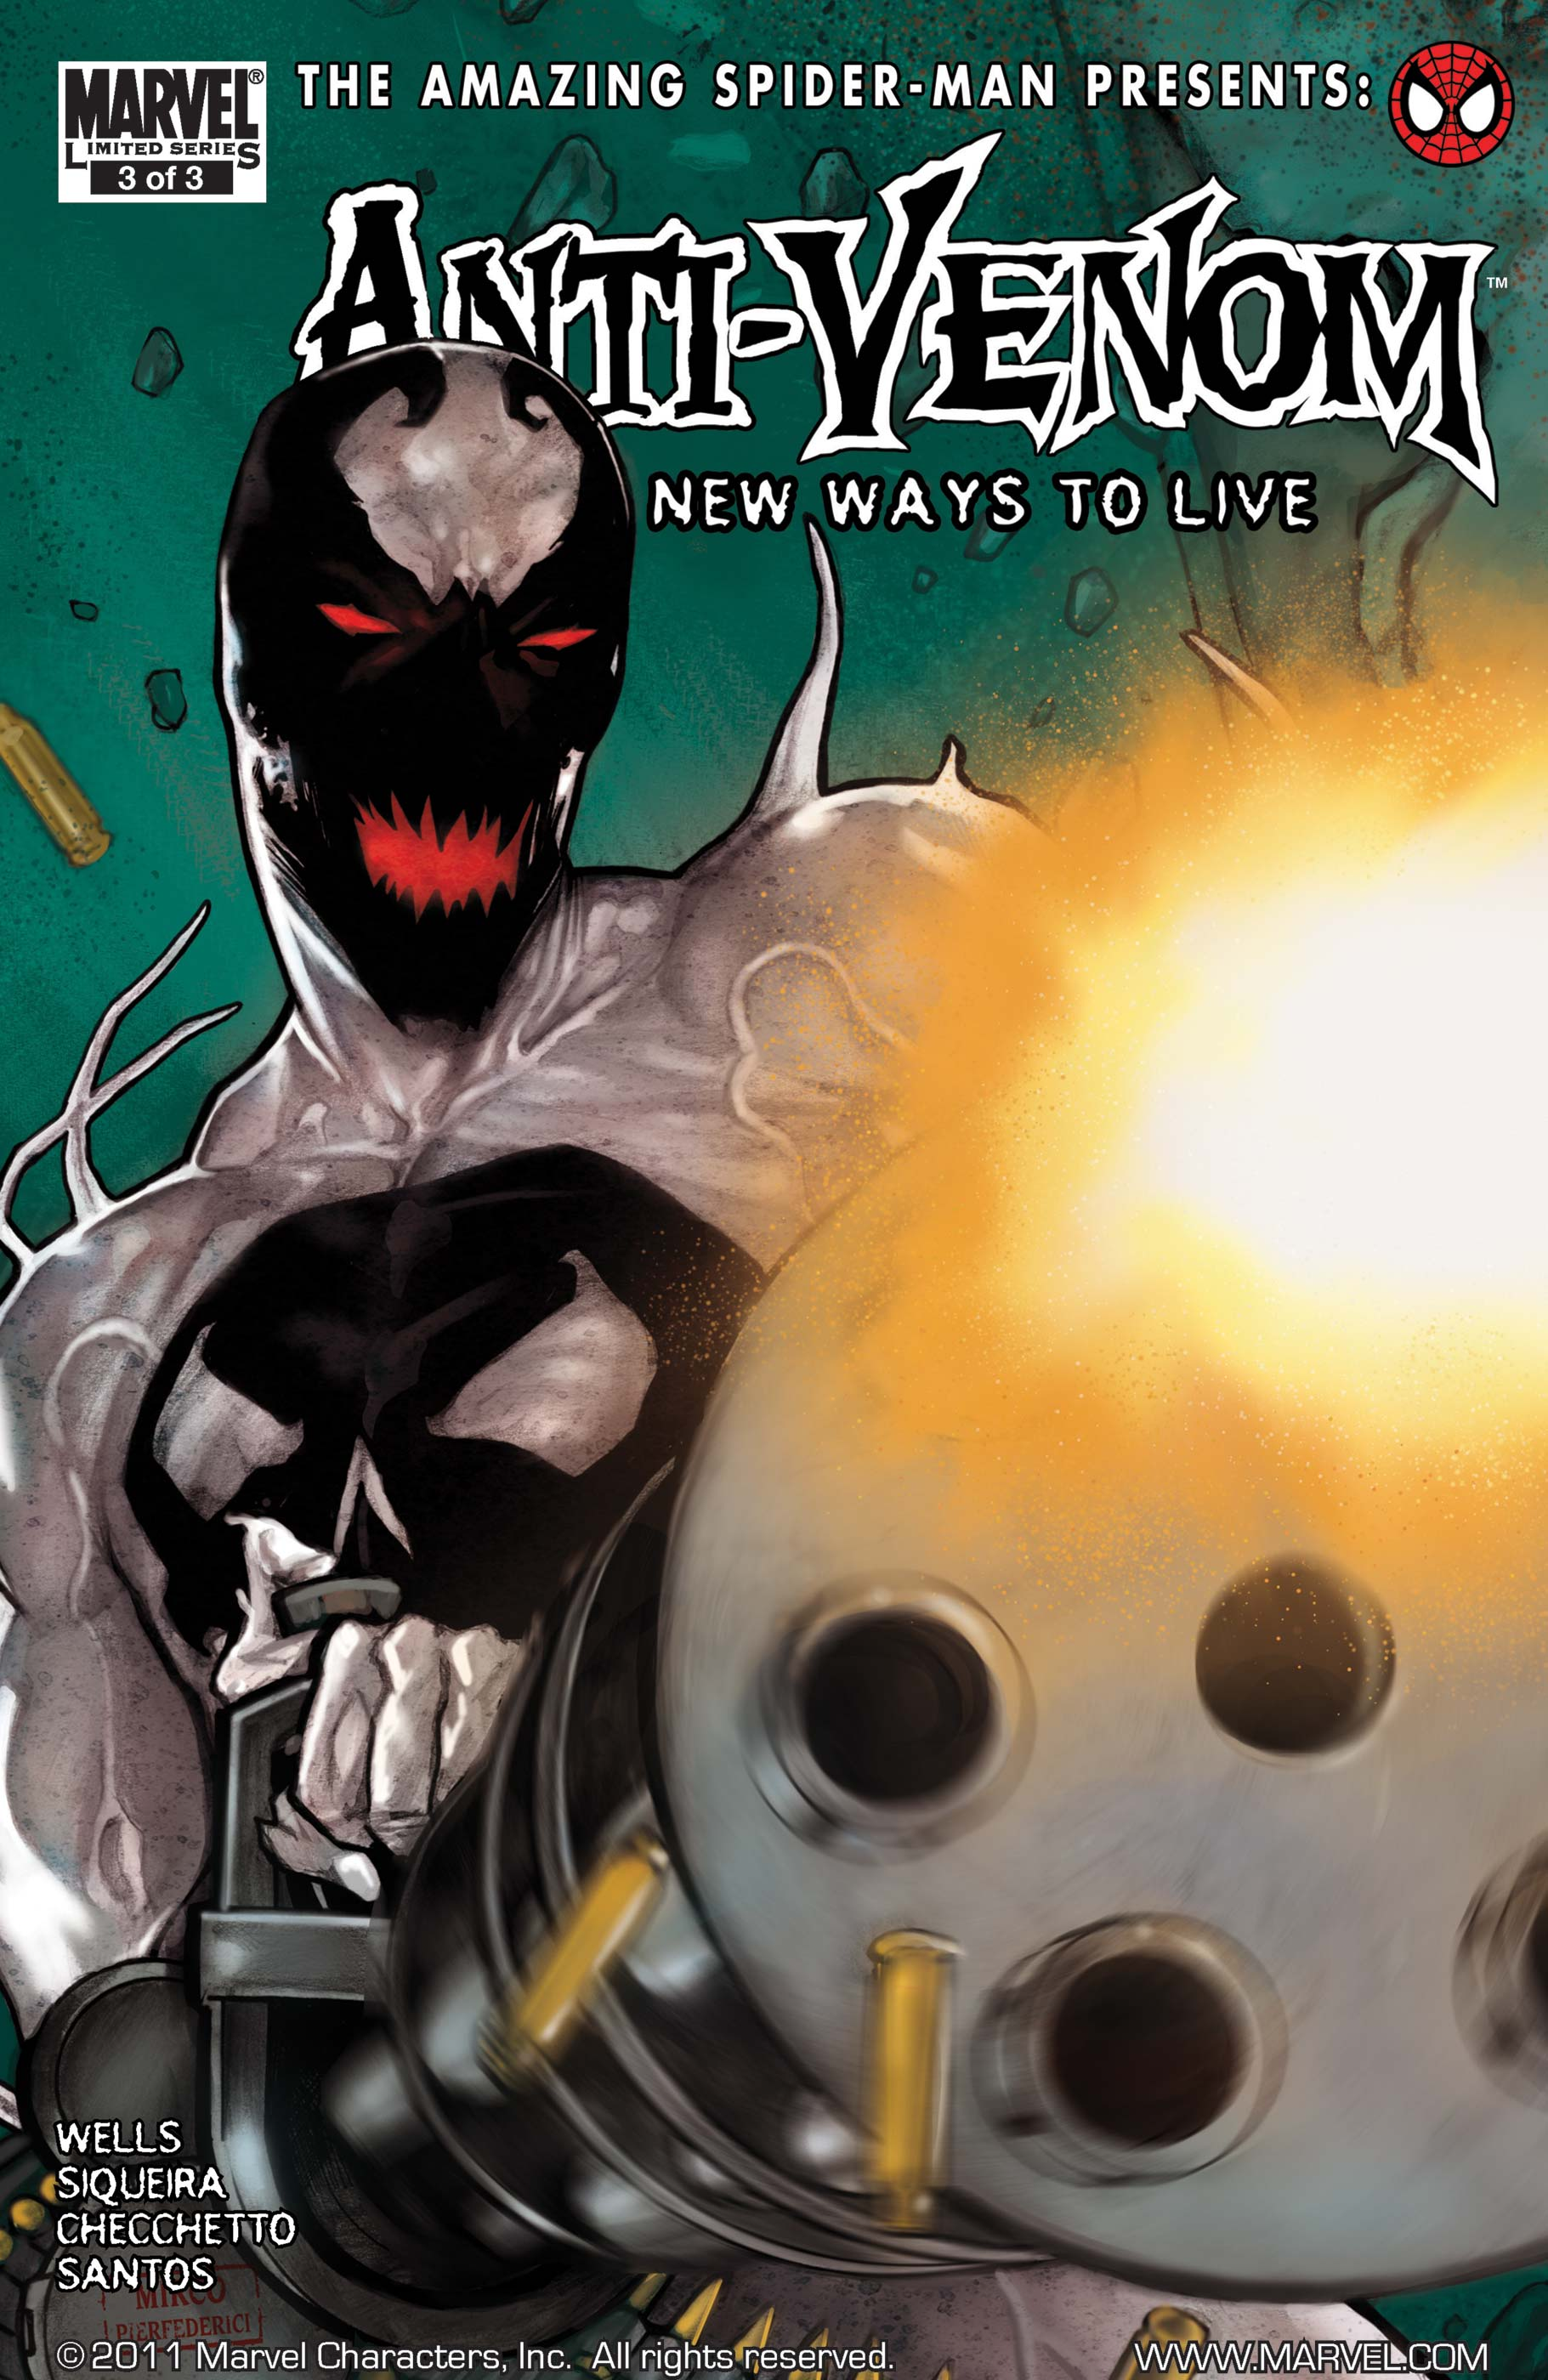 Amazing Spider-Man Presents: Anti-Venom - New Ways to Live (2009) #3